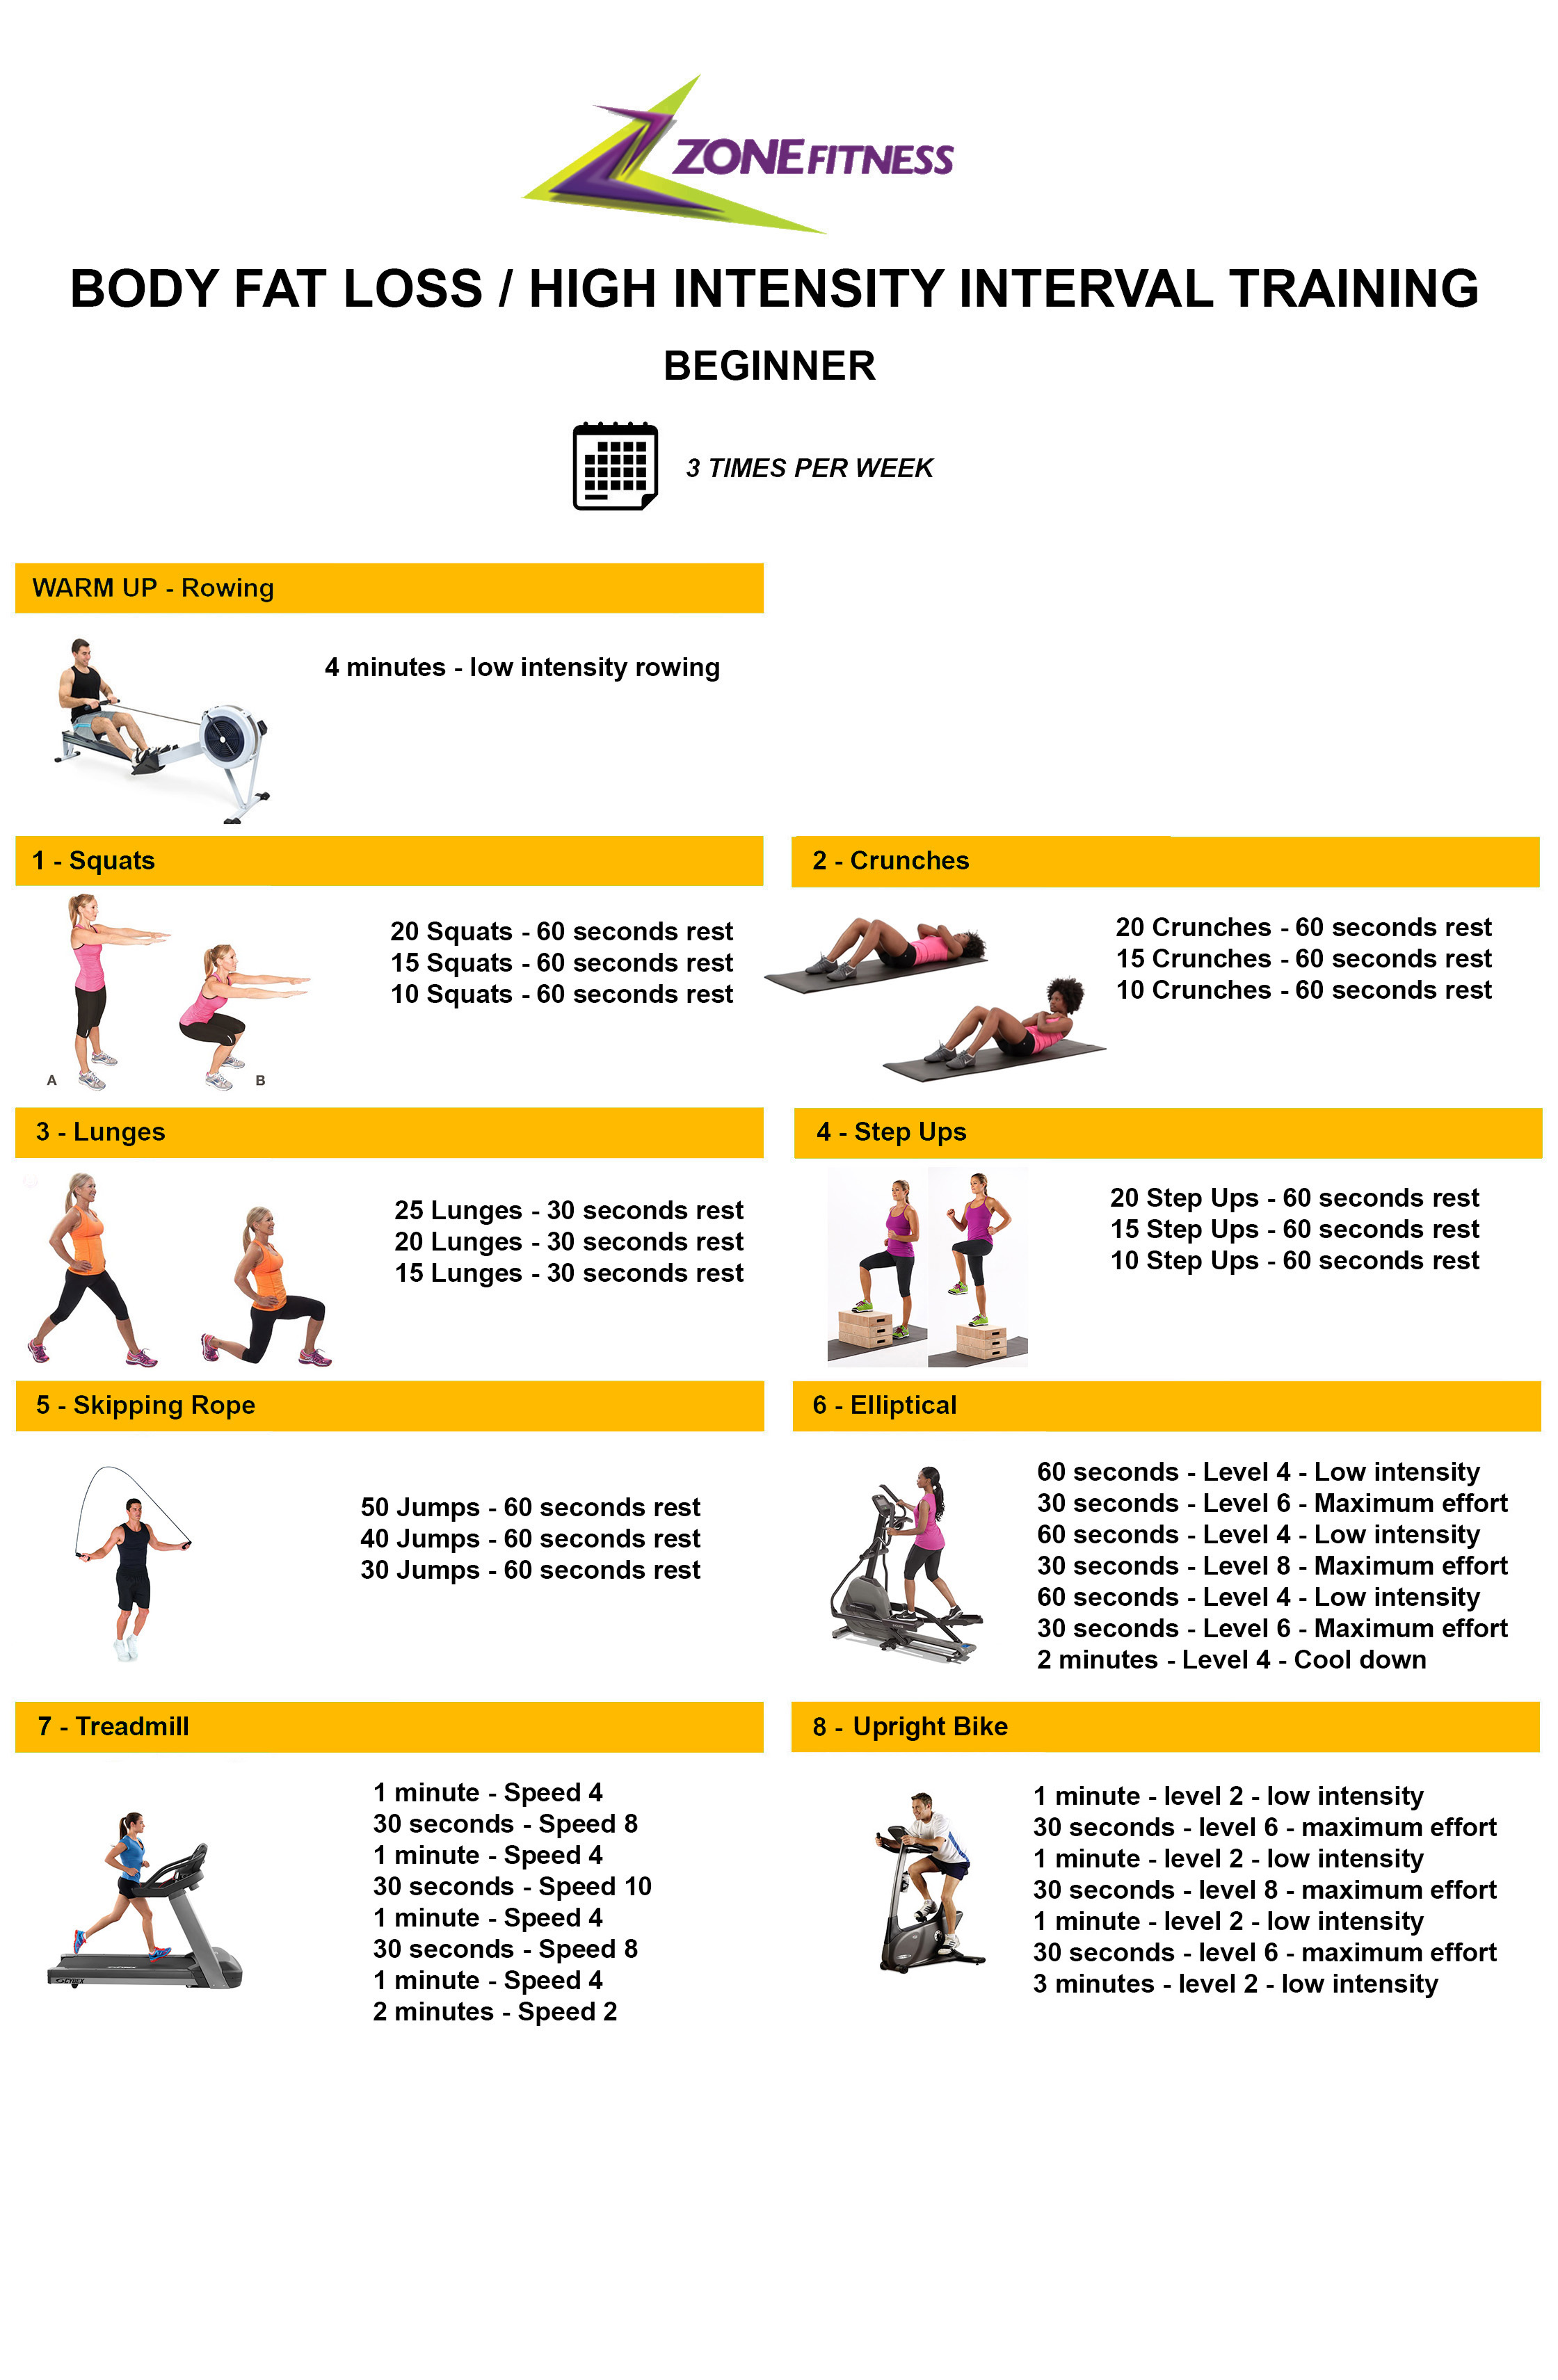 hiit workouts for beginners pdf